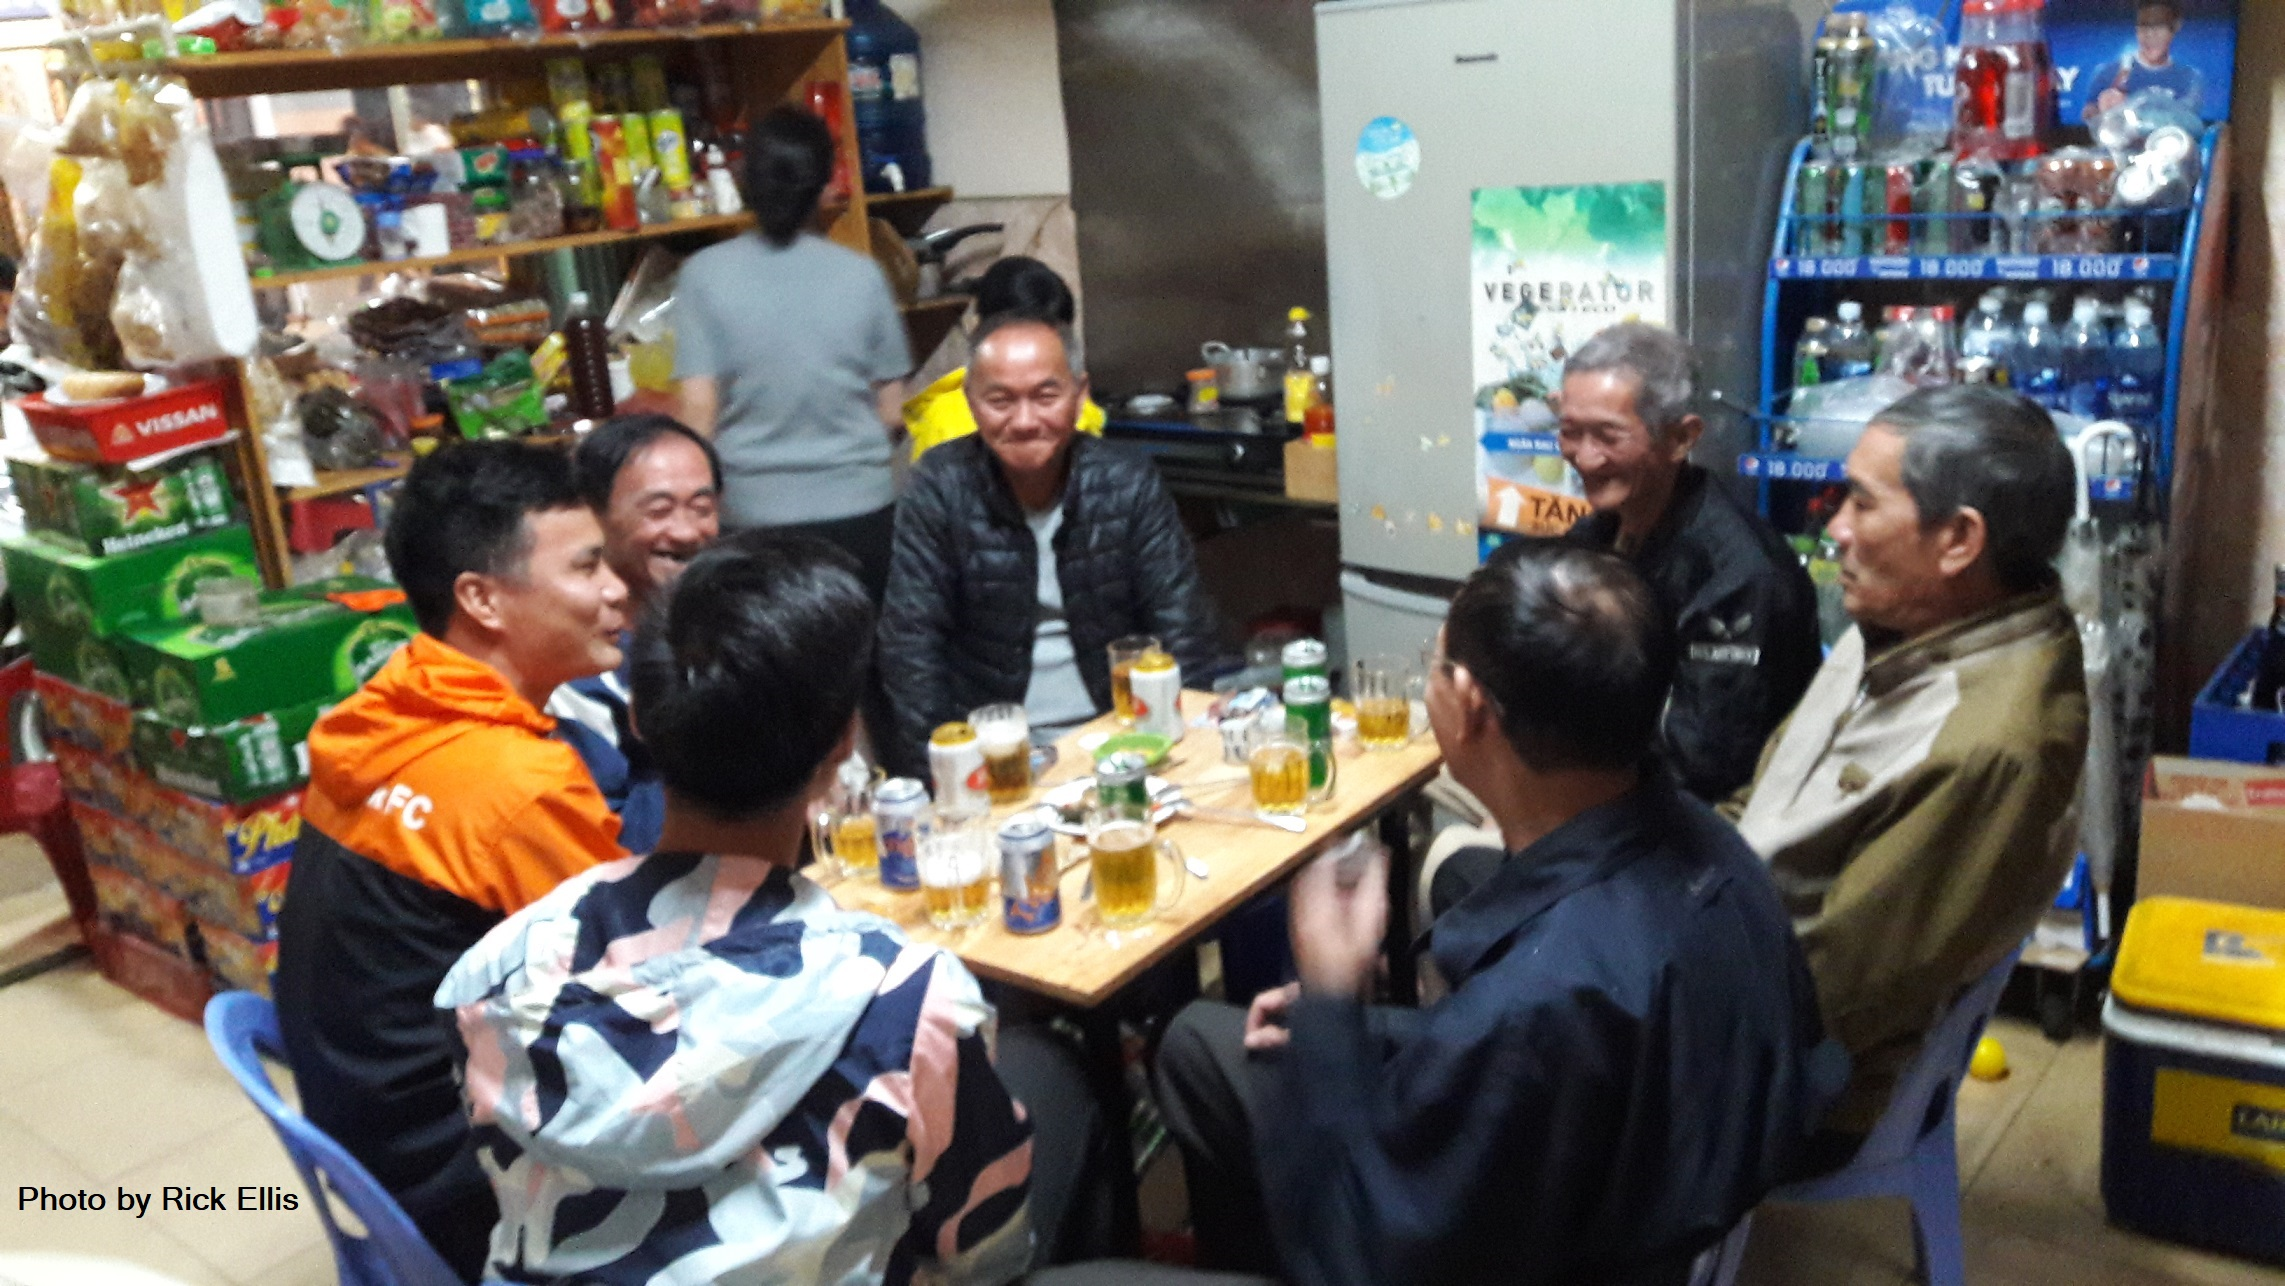 Strong bond between youth and elderly in Vietnam